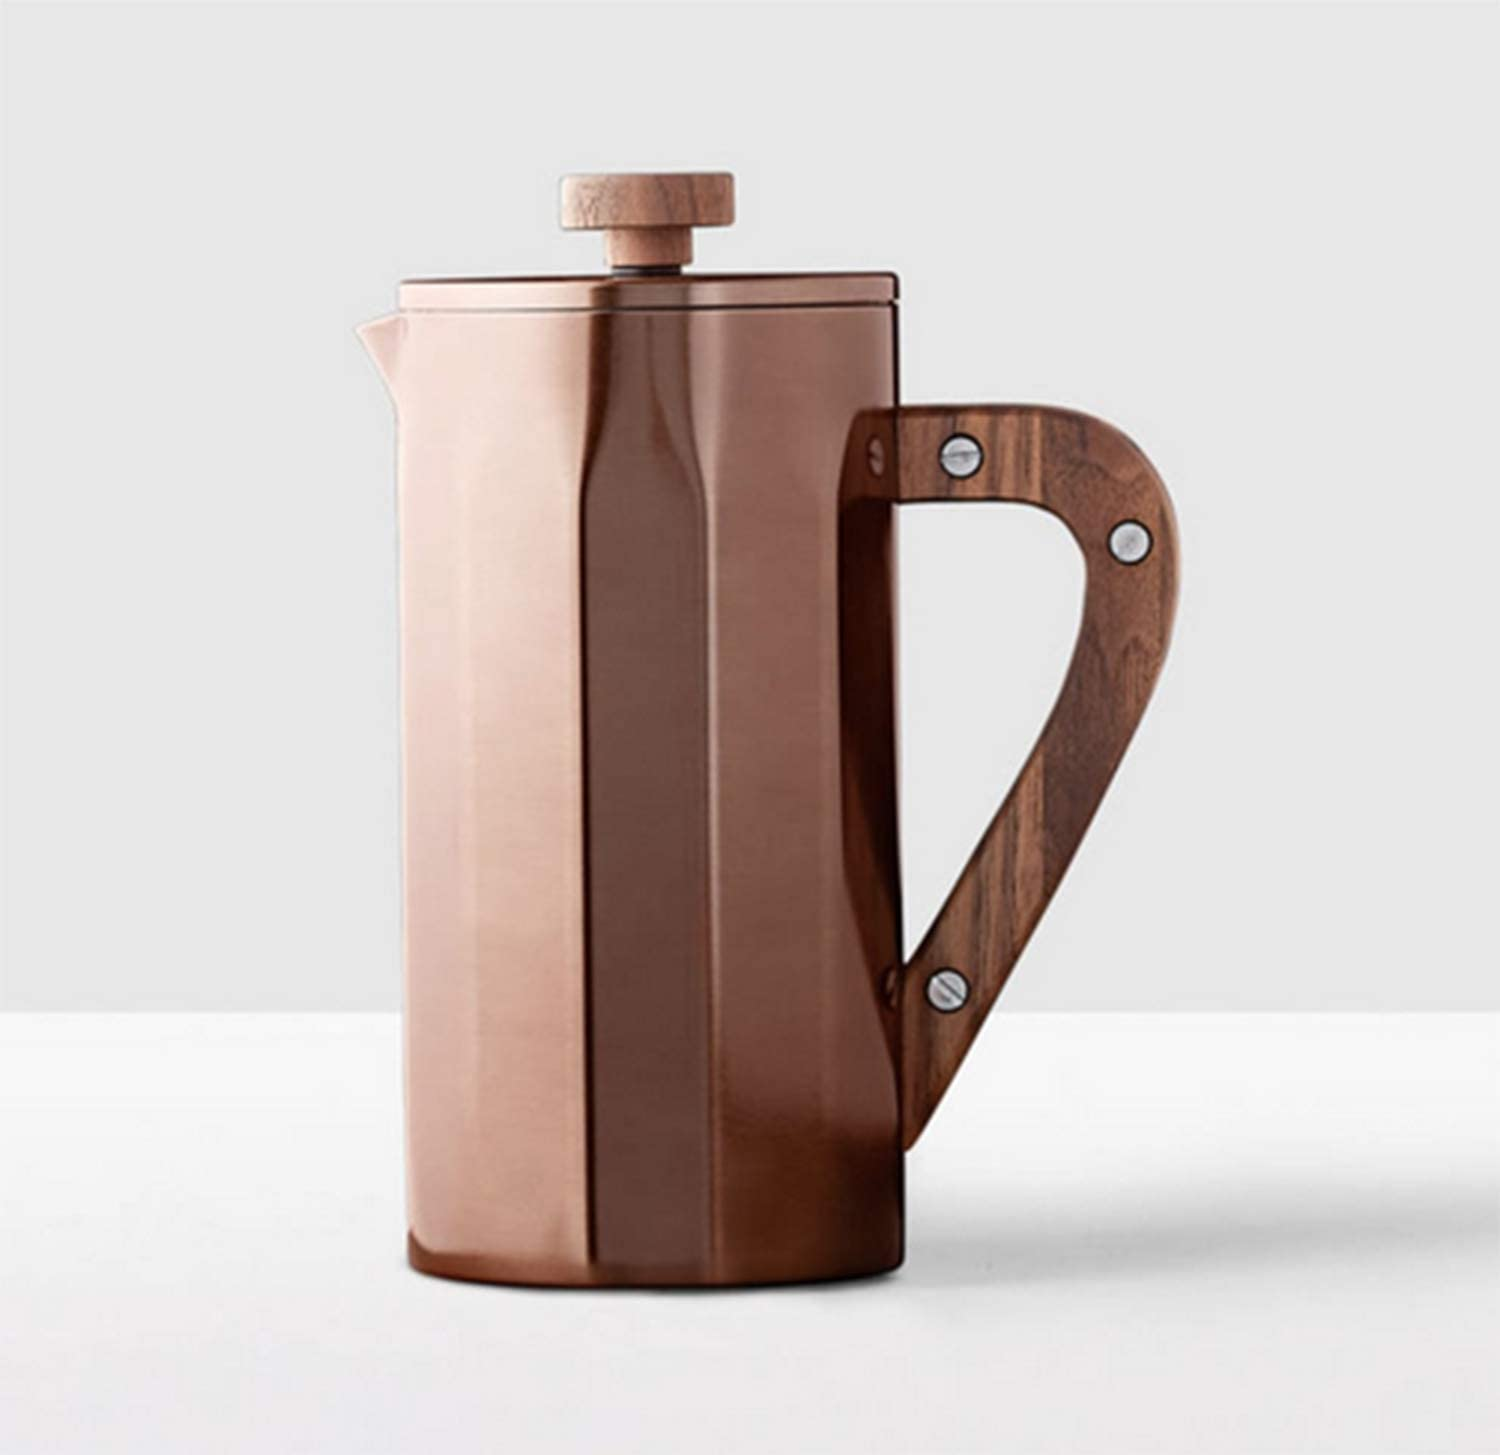 Starbucks Stainless Steel Coffee Press with Walnut Handle – Copper, 8-cup